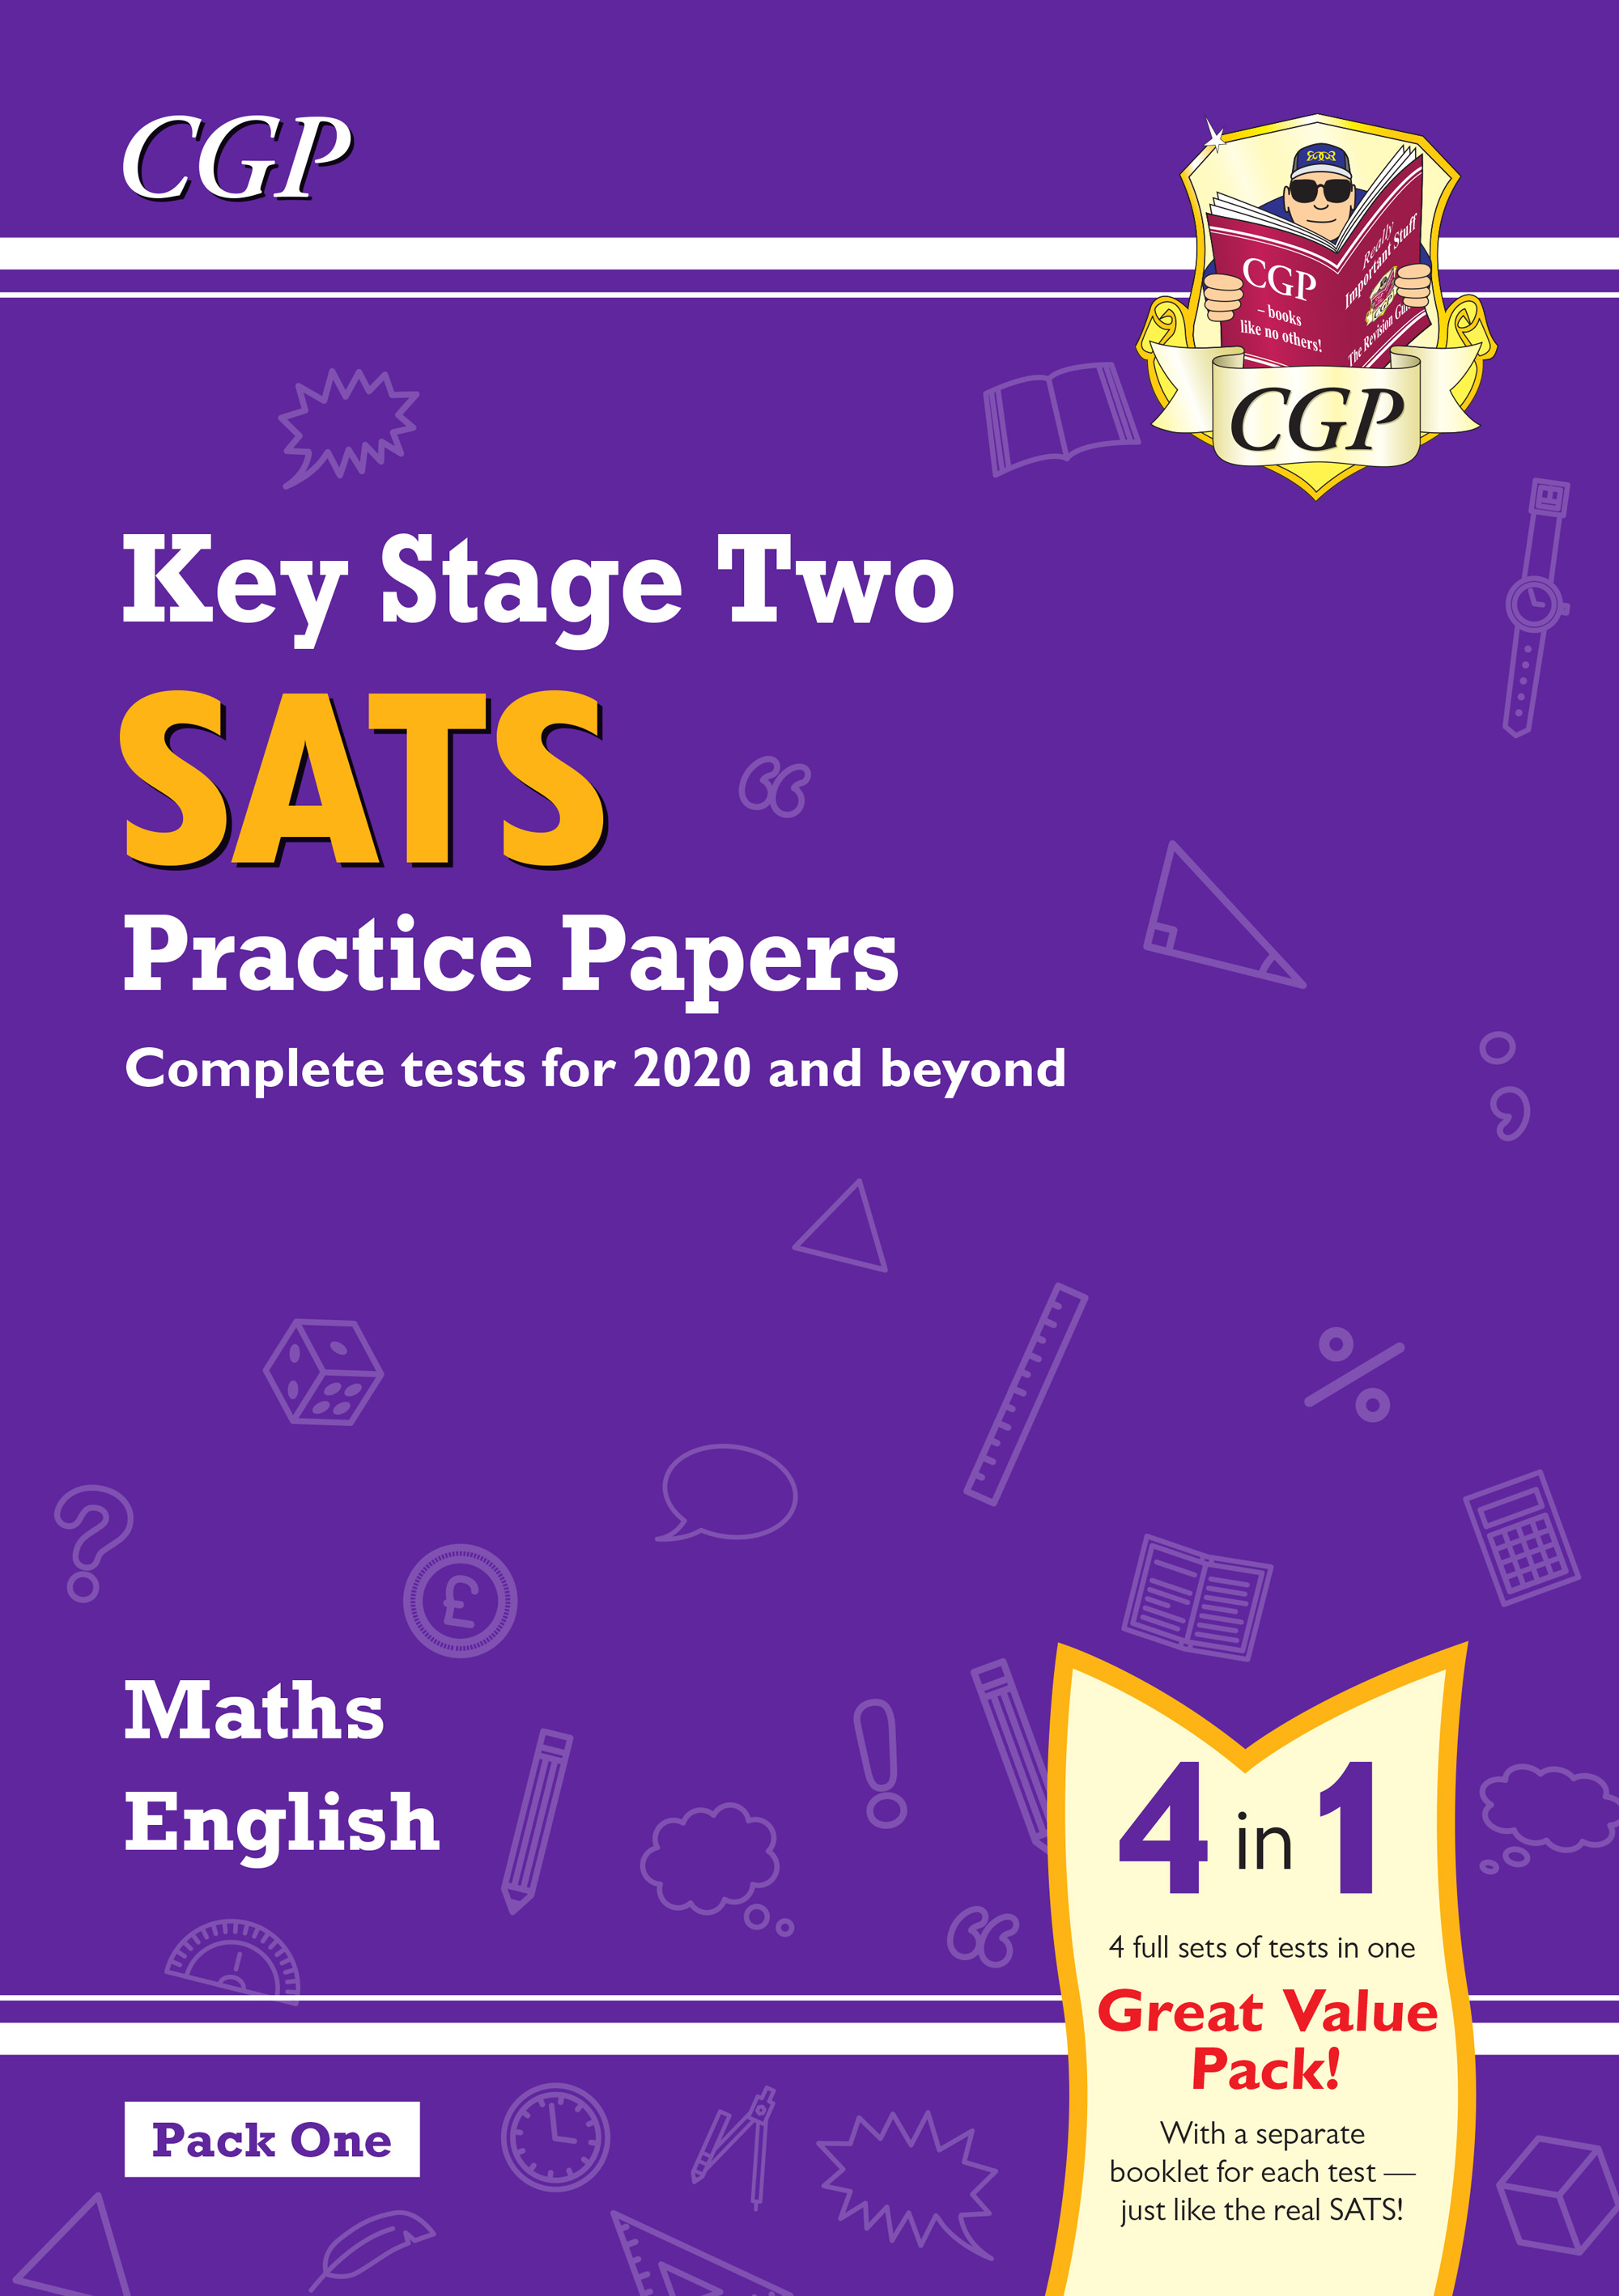 MEB24 - New KS2 Maths and English SATS Practice Papers Pack (for the 2019 tests) - Pack 1